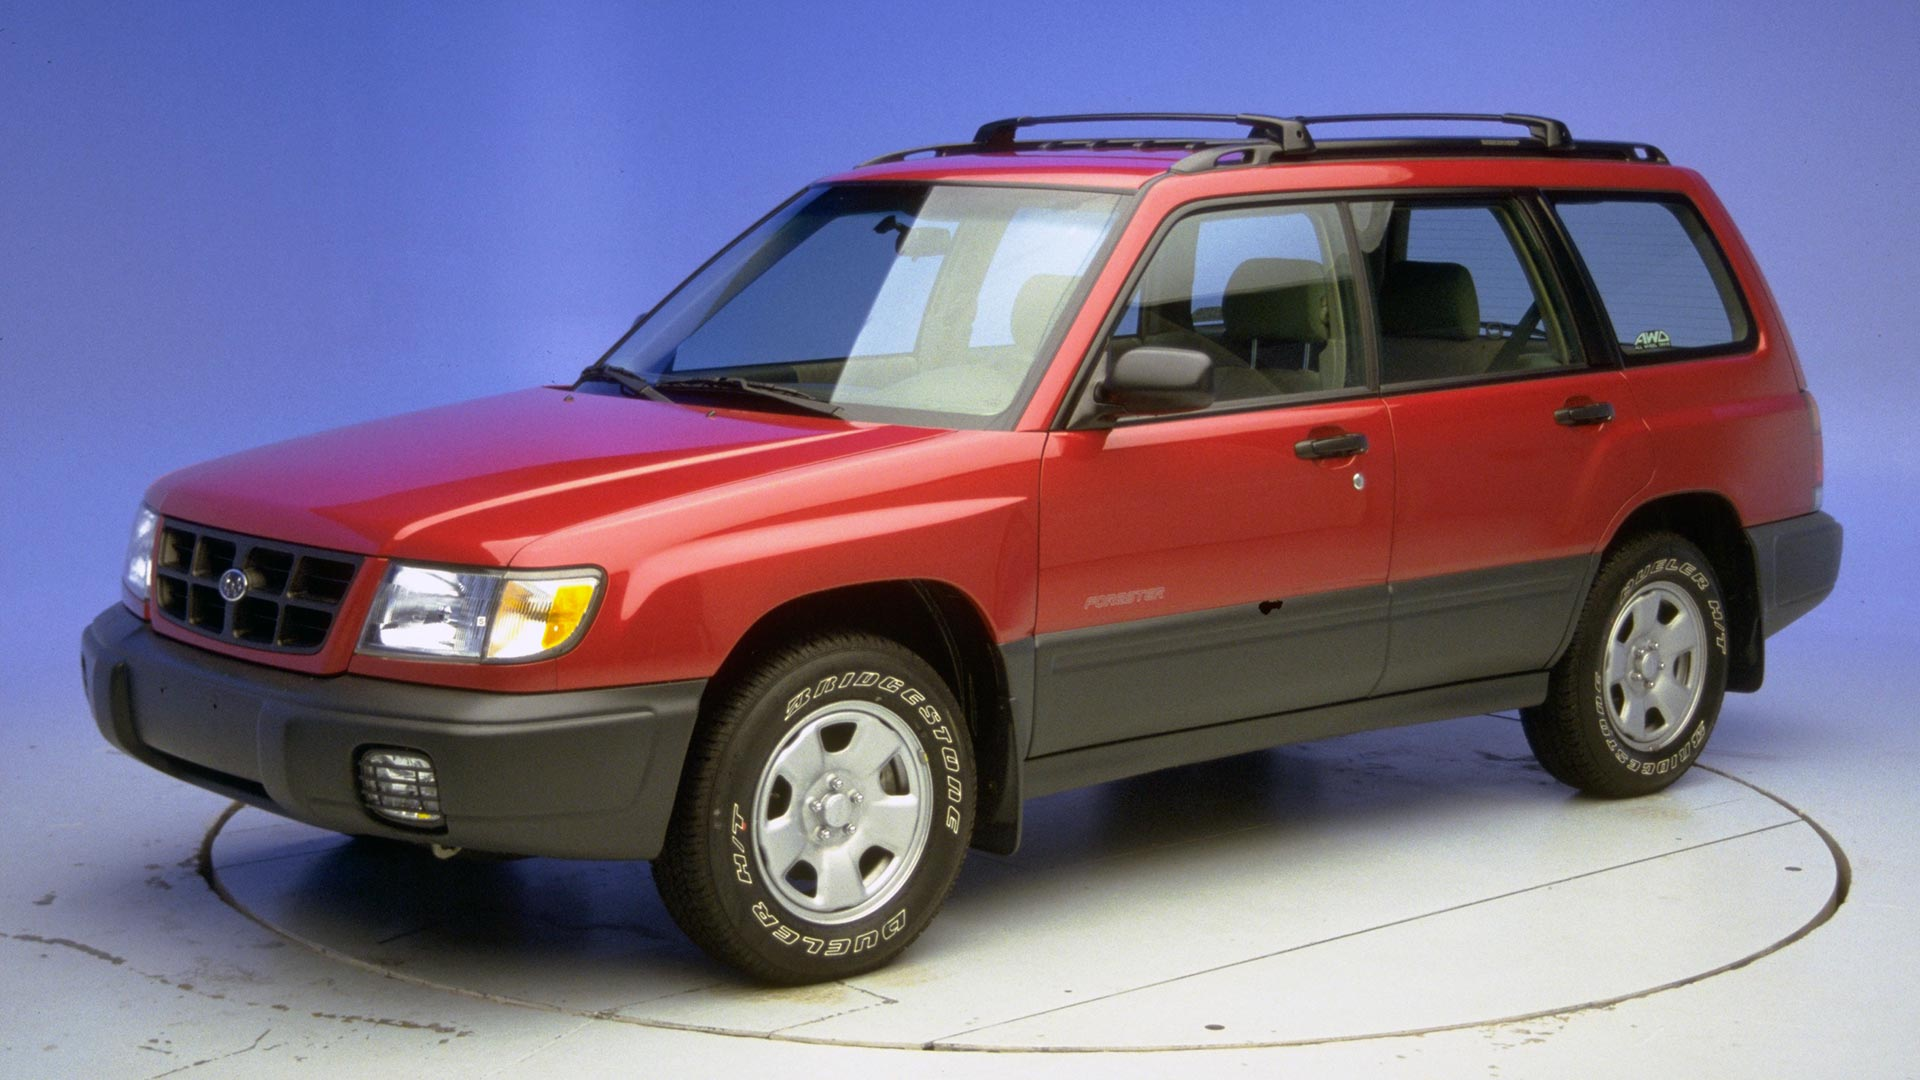 2000 Subaru Forester 4-door SUV